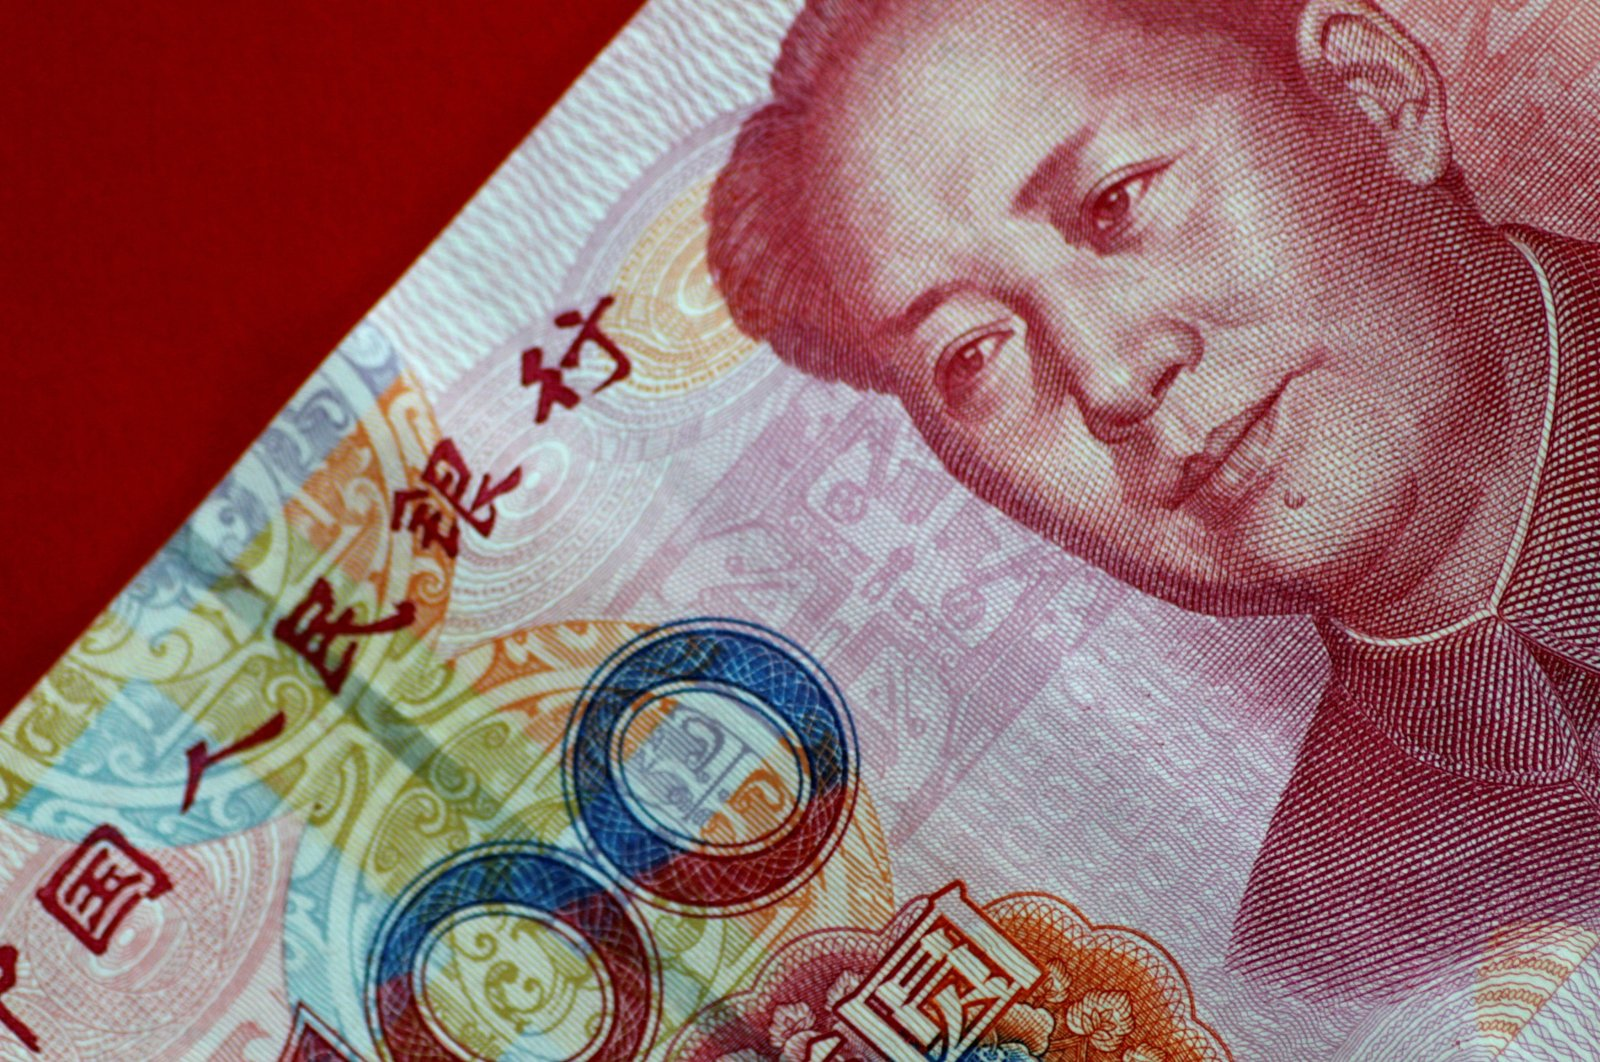 Chairman Mao Zedong graces a Chinese 100 yuan note in this illustration photo, May 31, 2017. (Reuters Photo)